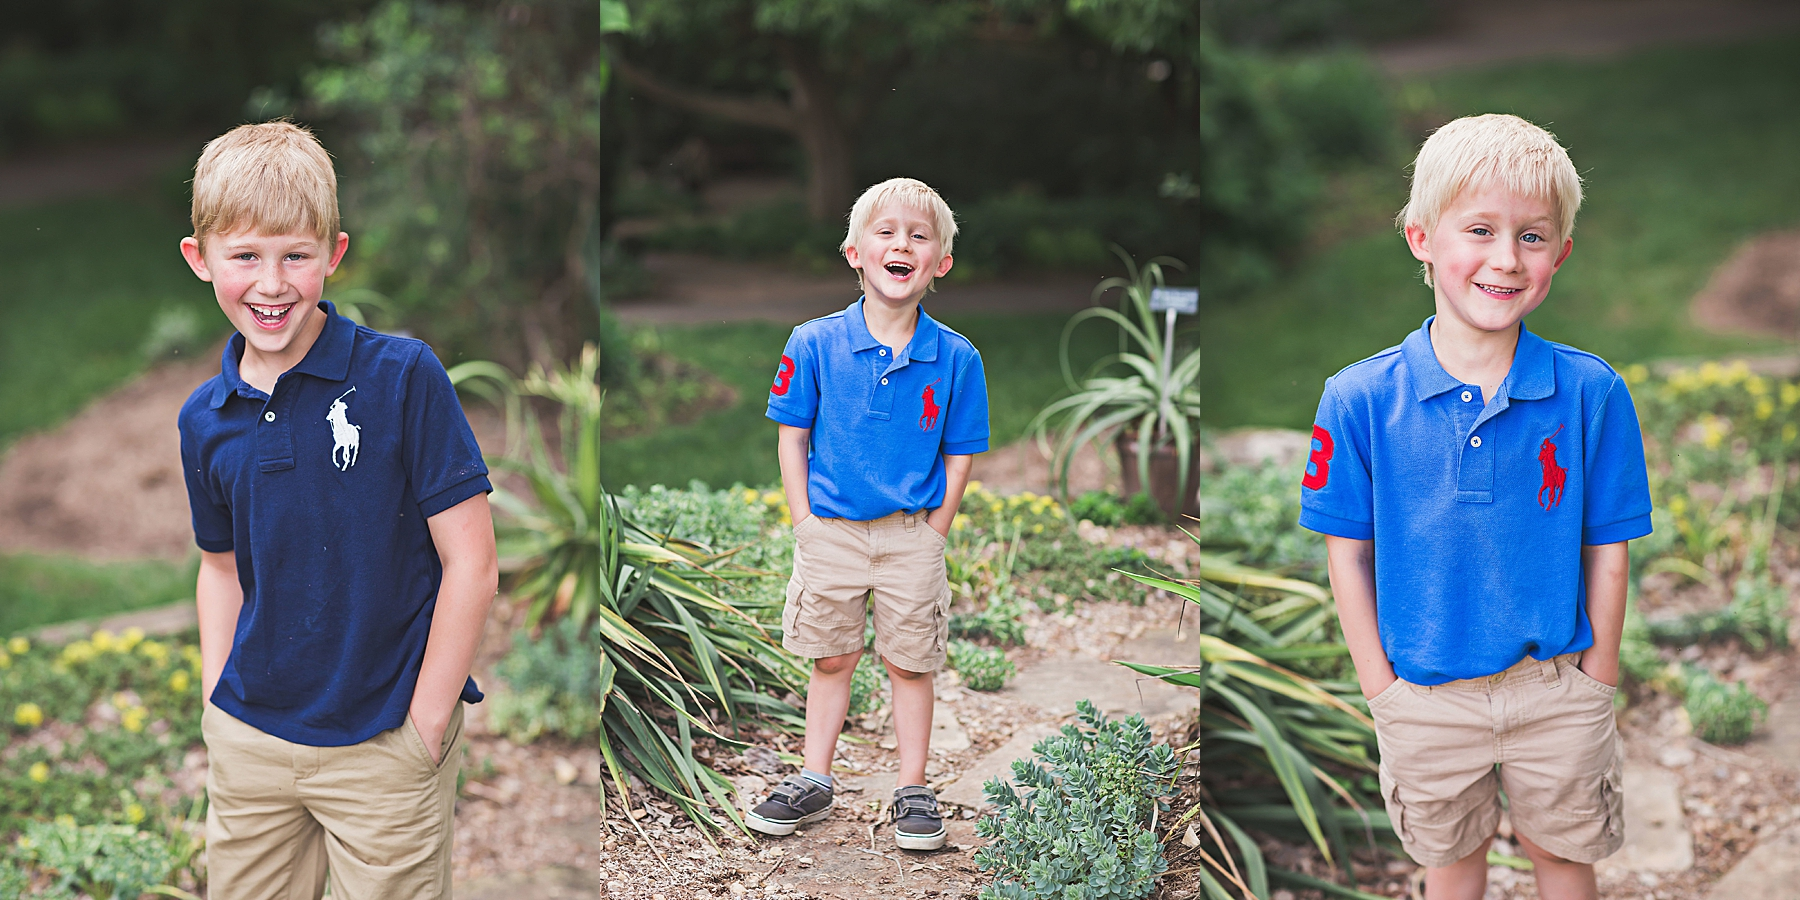 little boys with hands in their pockets how to take good pictures kristina rose photography